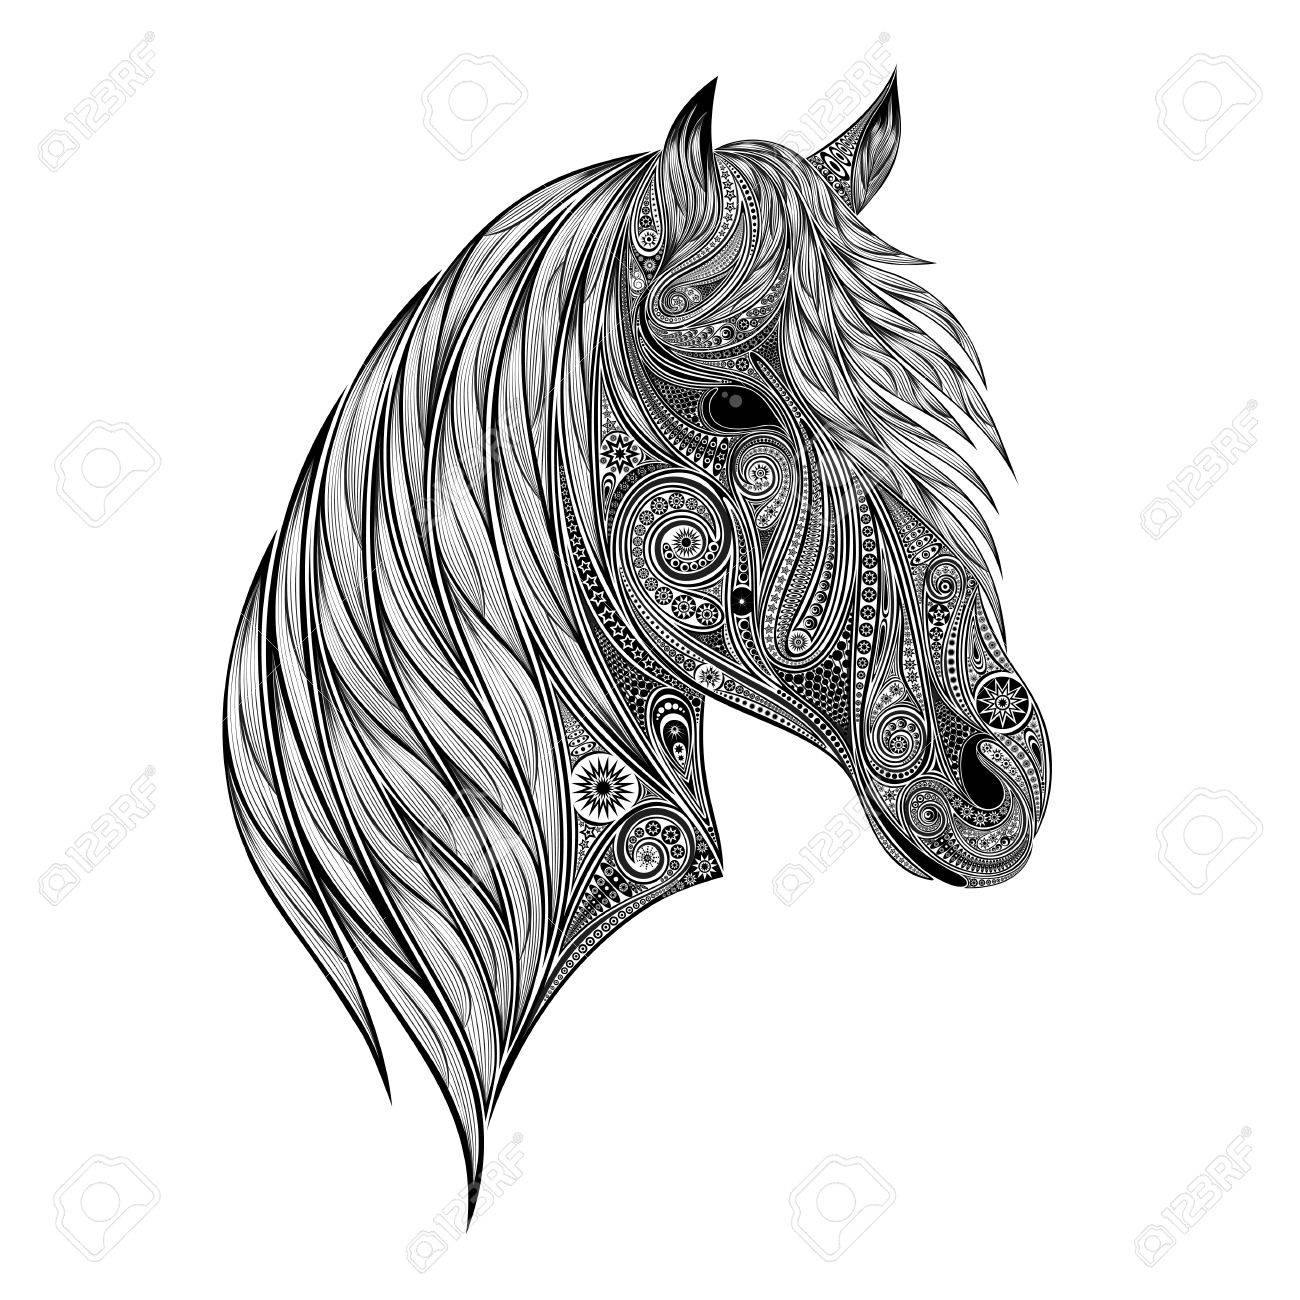 Abstract Vector Silhouette Of A Horse Head Patterns Royalty Free Cliparts Vectors And Stock Illustration Image 72813417